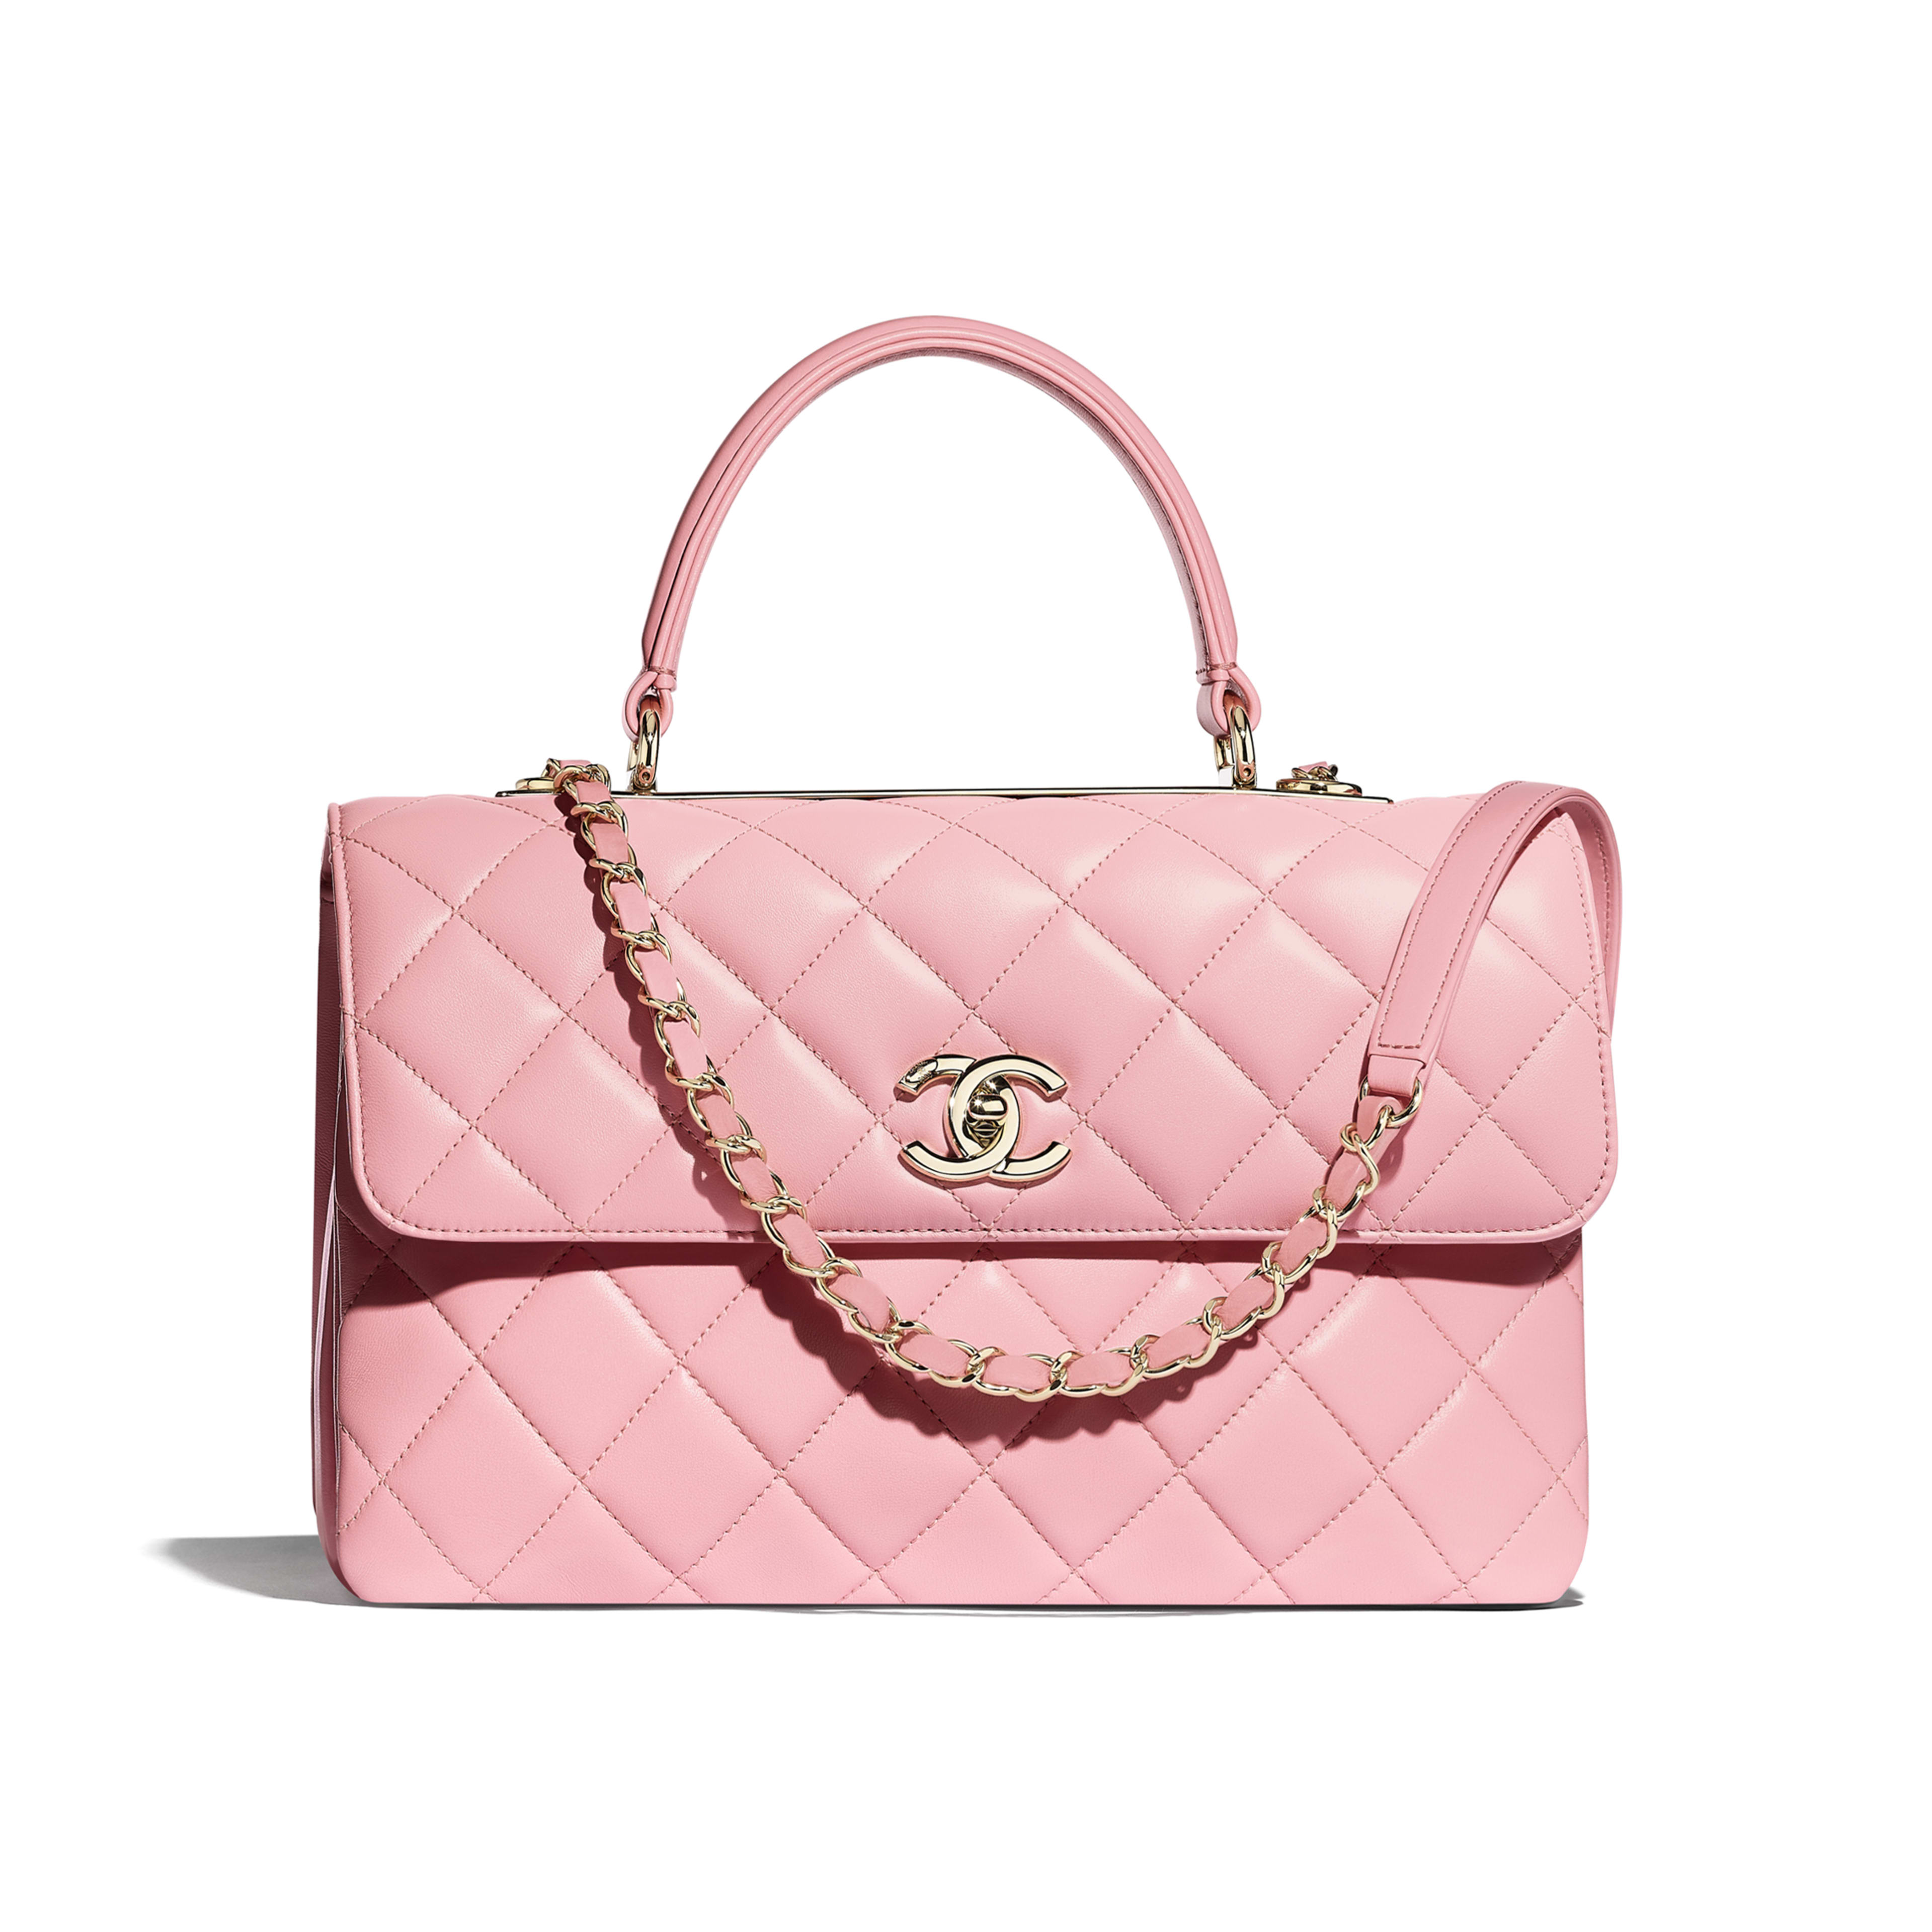 Flap Bag with Top Handle - Pink - Lambskin & Gold-Tone Metal - Default view - see full sized version